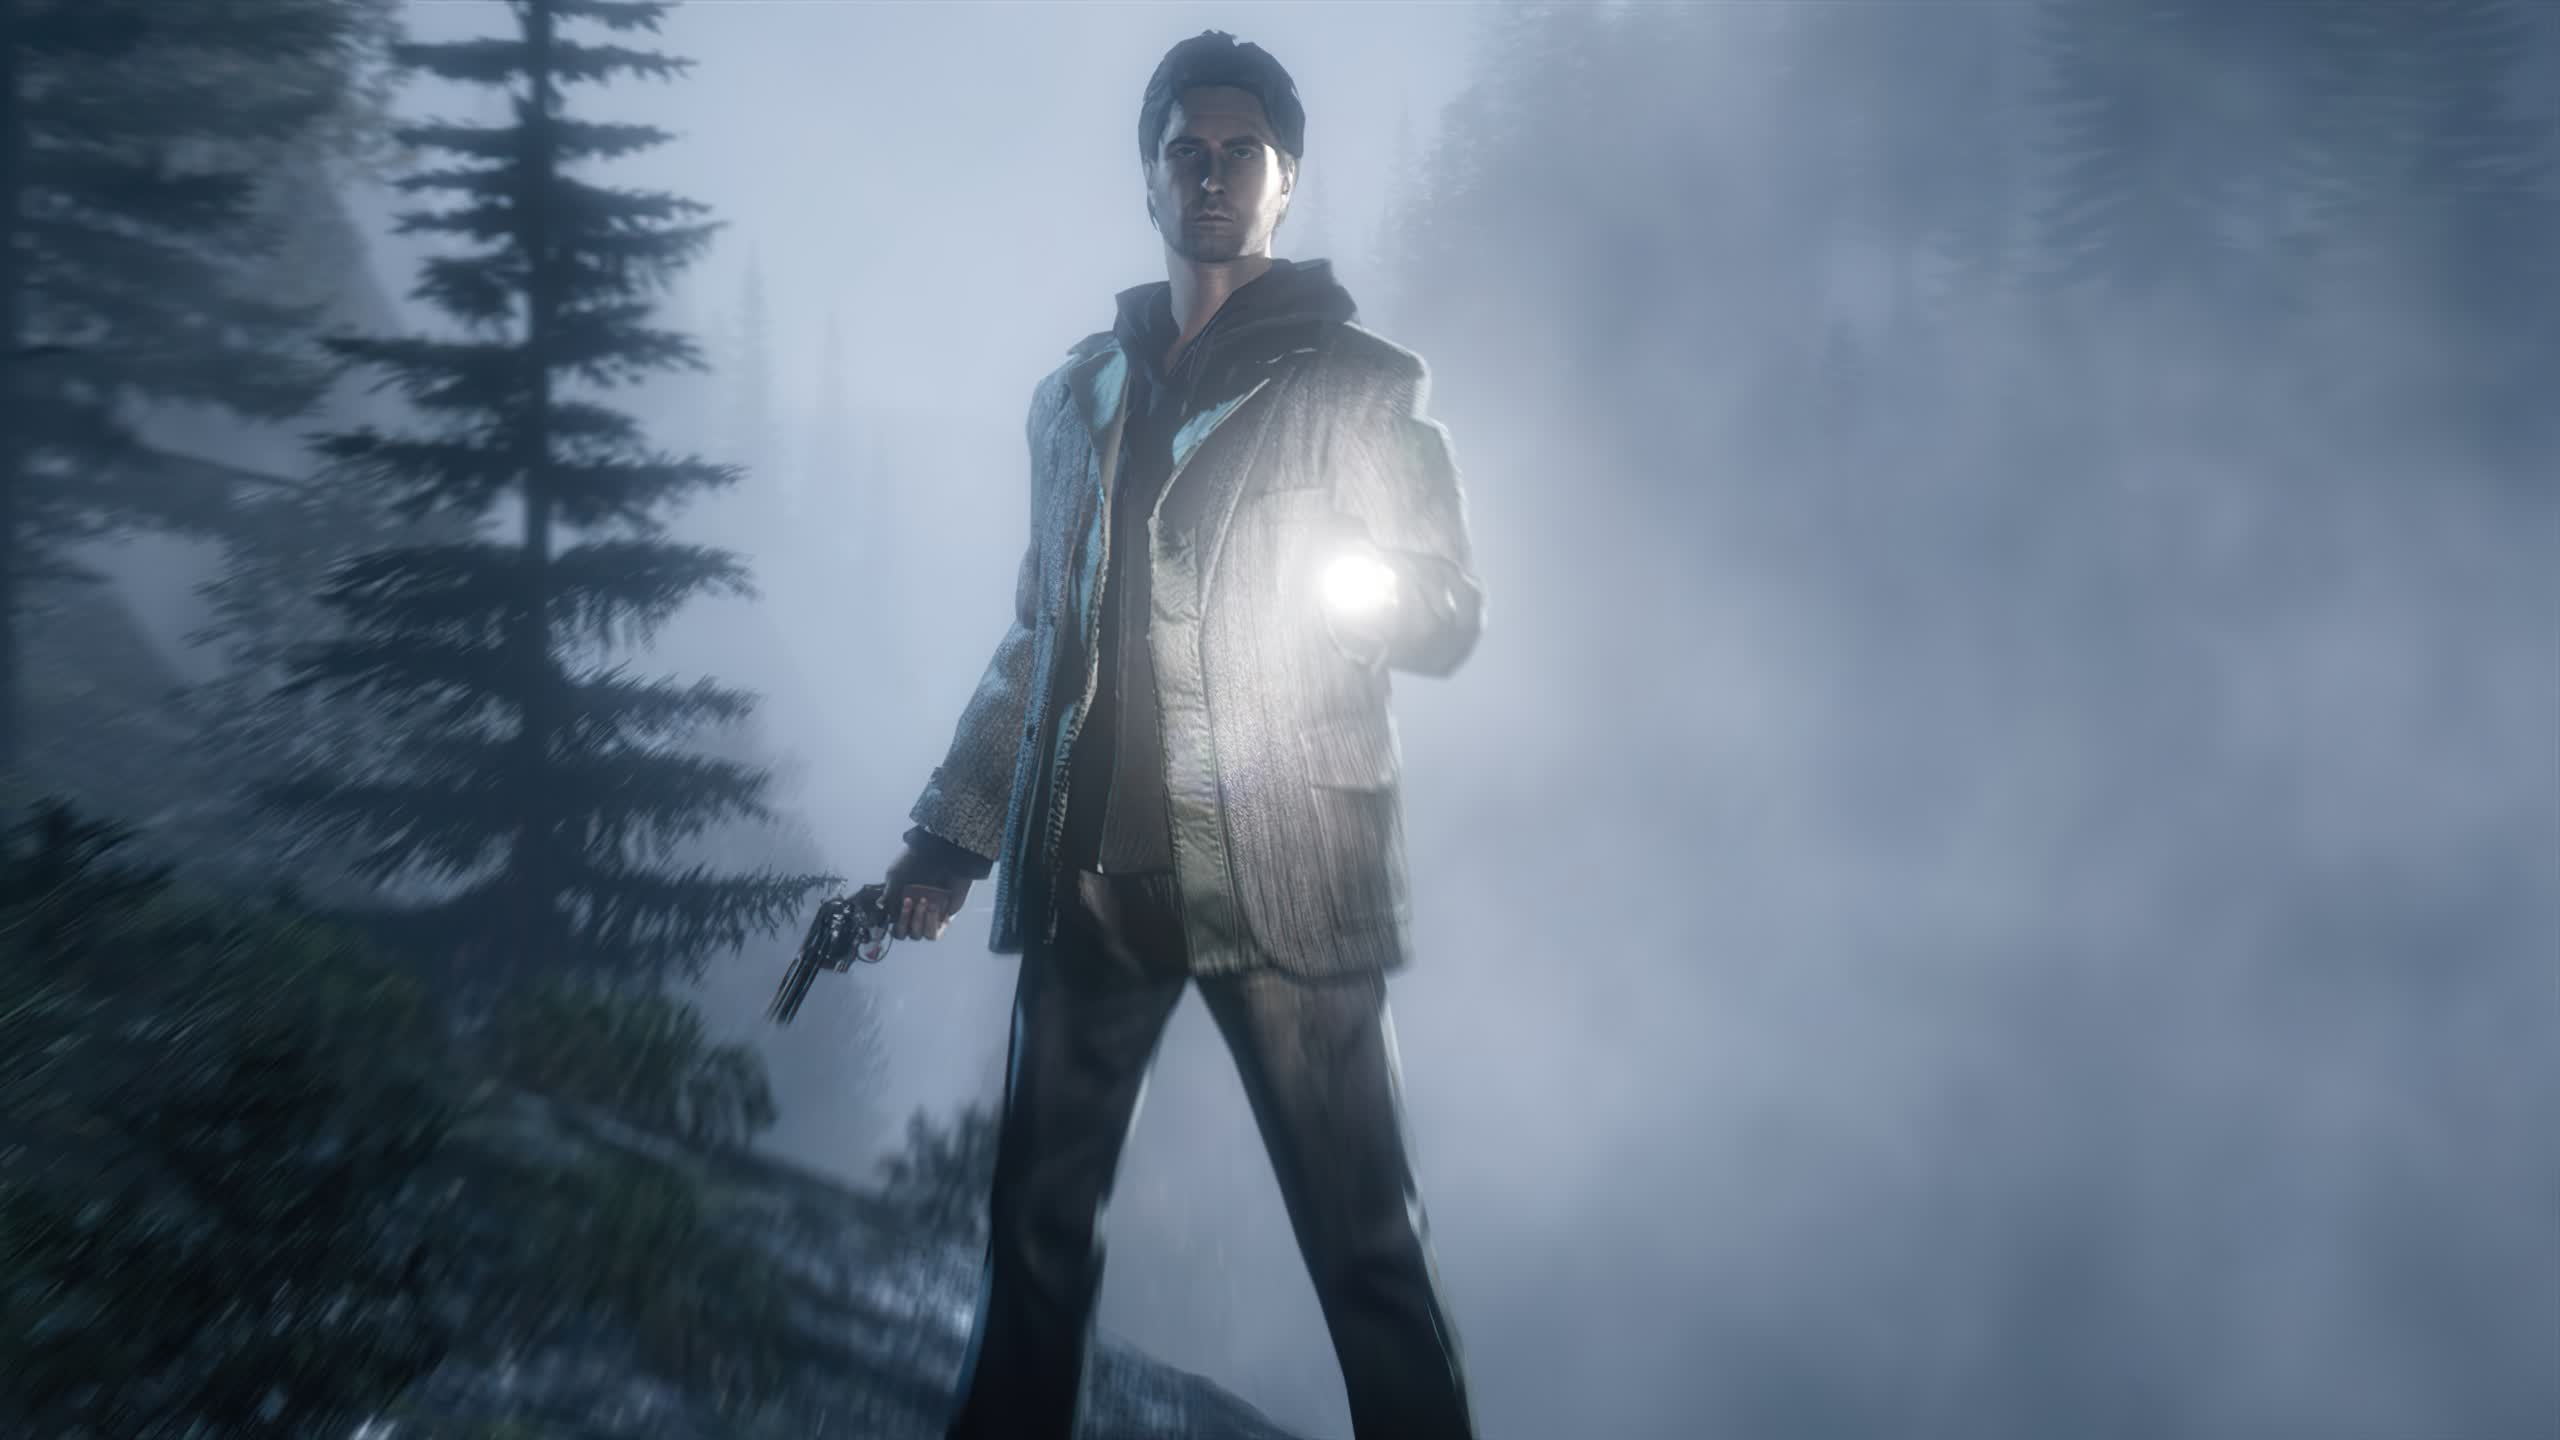 Alan Wake Remastered is coming to PC, Xbox and PlayStation this fall